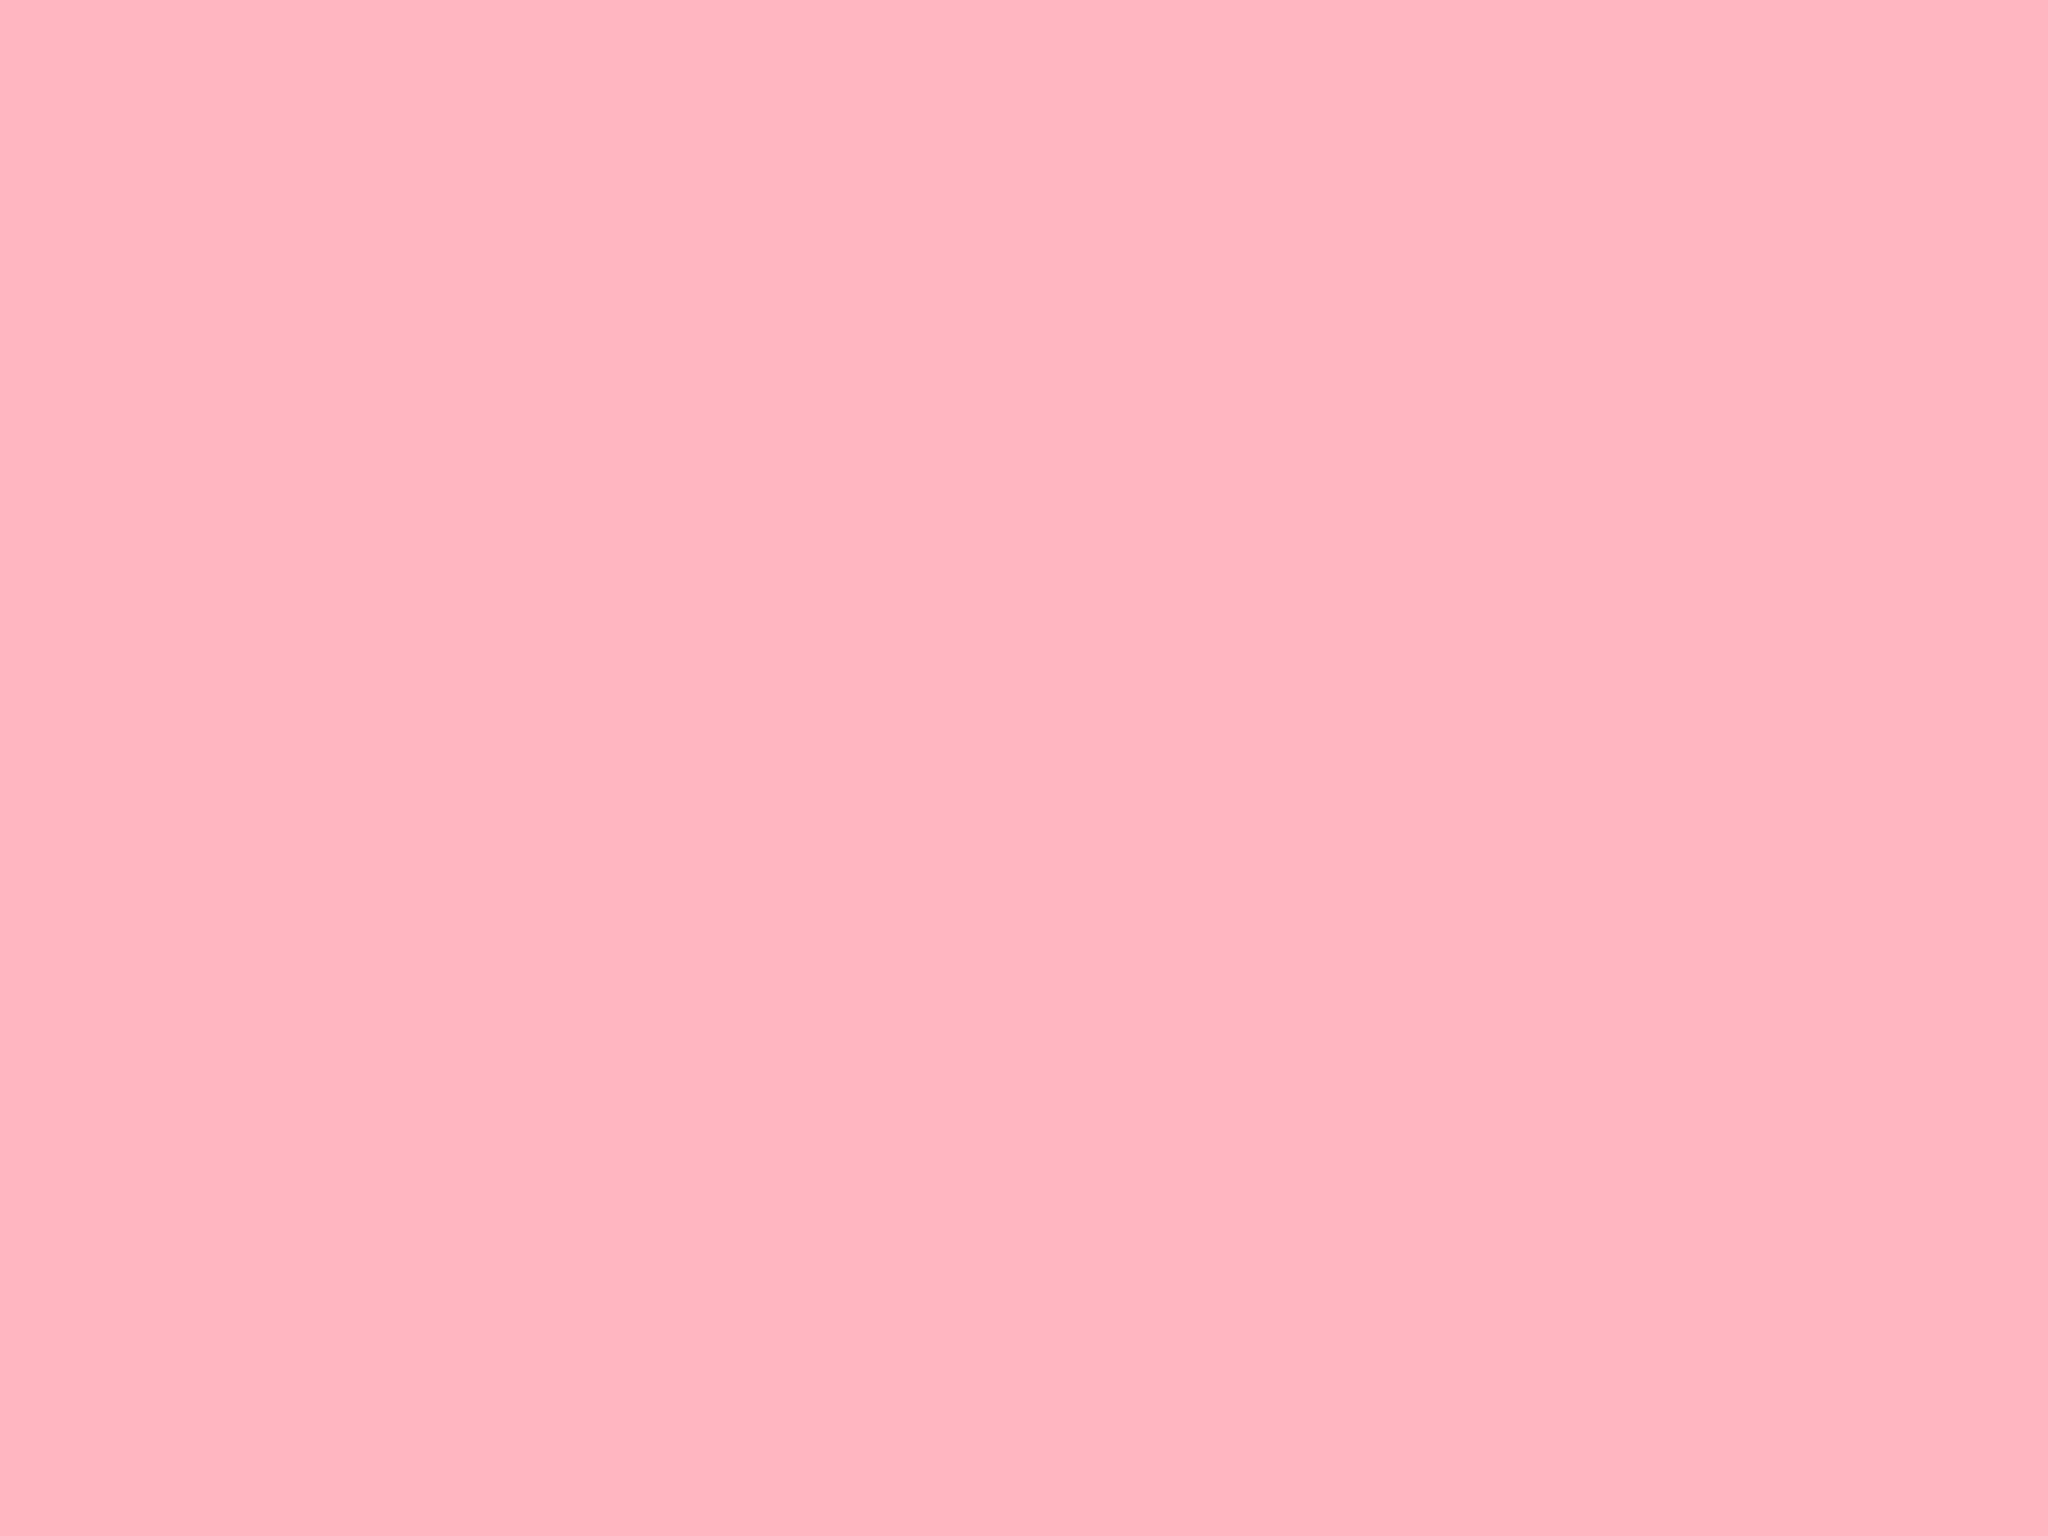 2048x1536 resolution Light Pink solid color background view and 2048x1536